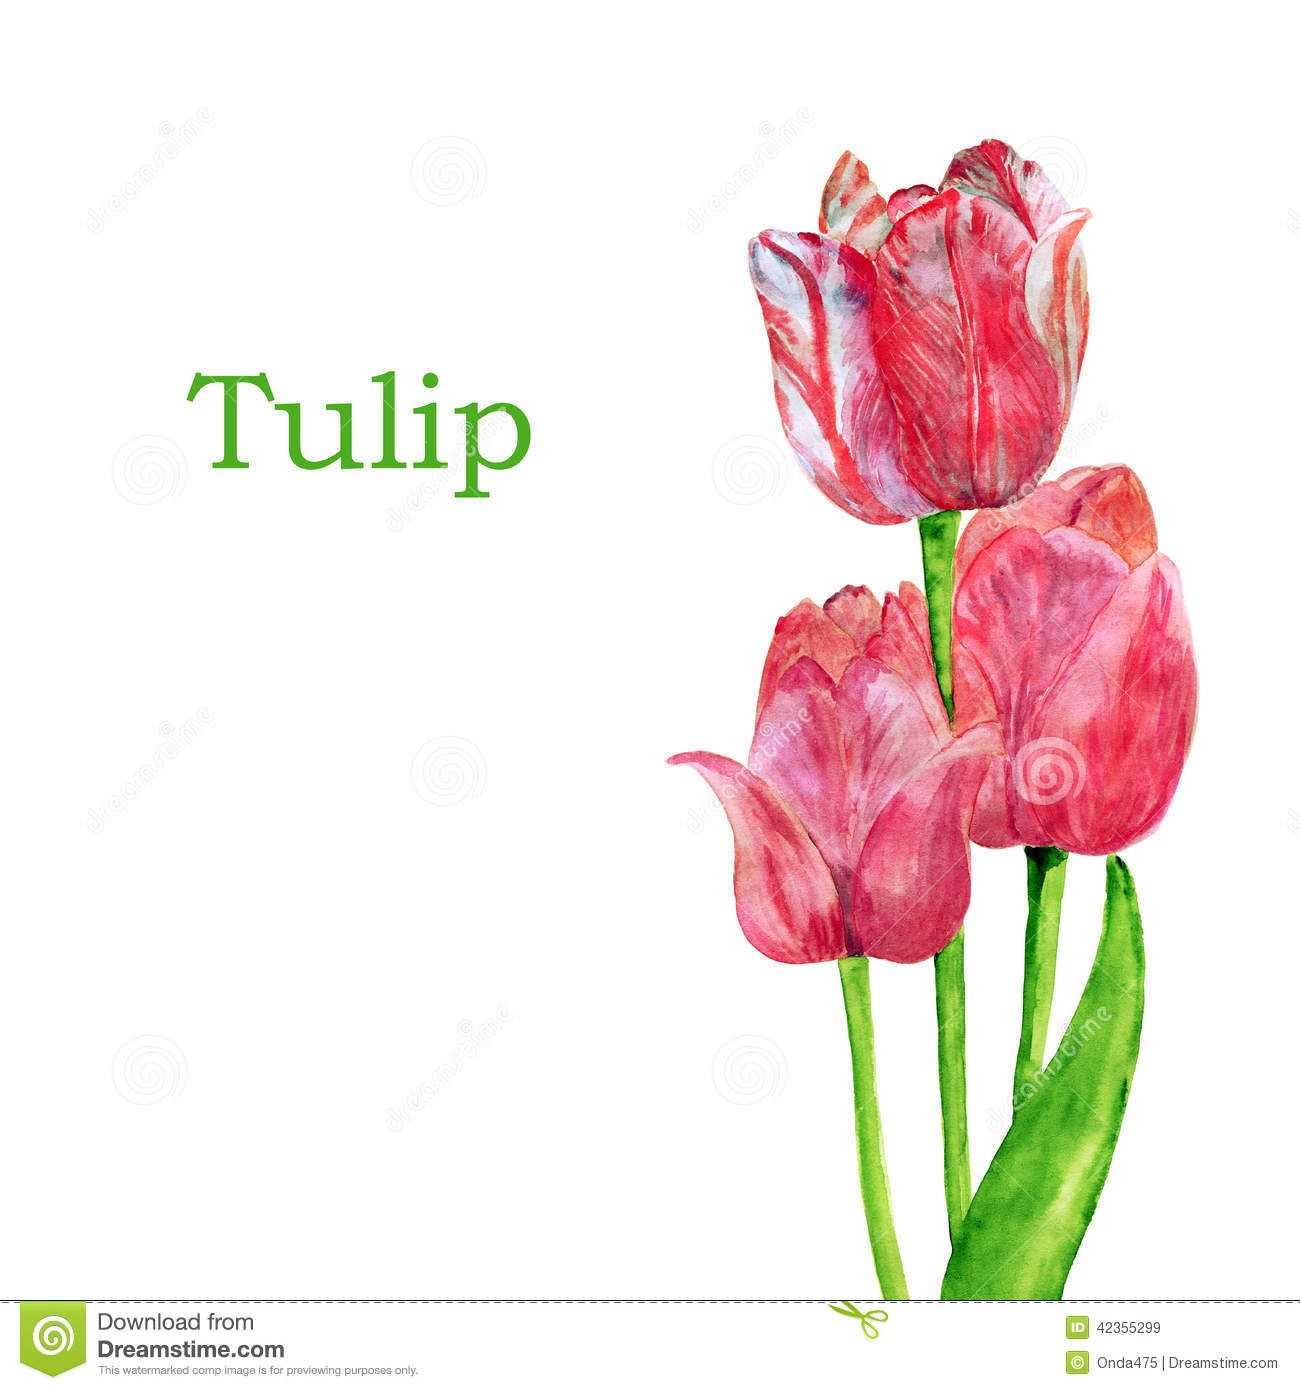 Tulips Isolated On A White Background. - Download From Over 36 Million High Quality Stock Photos, Images, Vectors. Sign up for FREE today. Image: 42355299